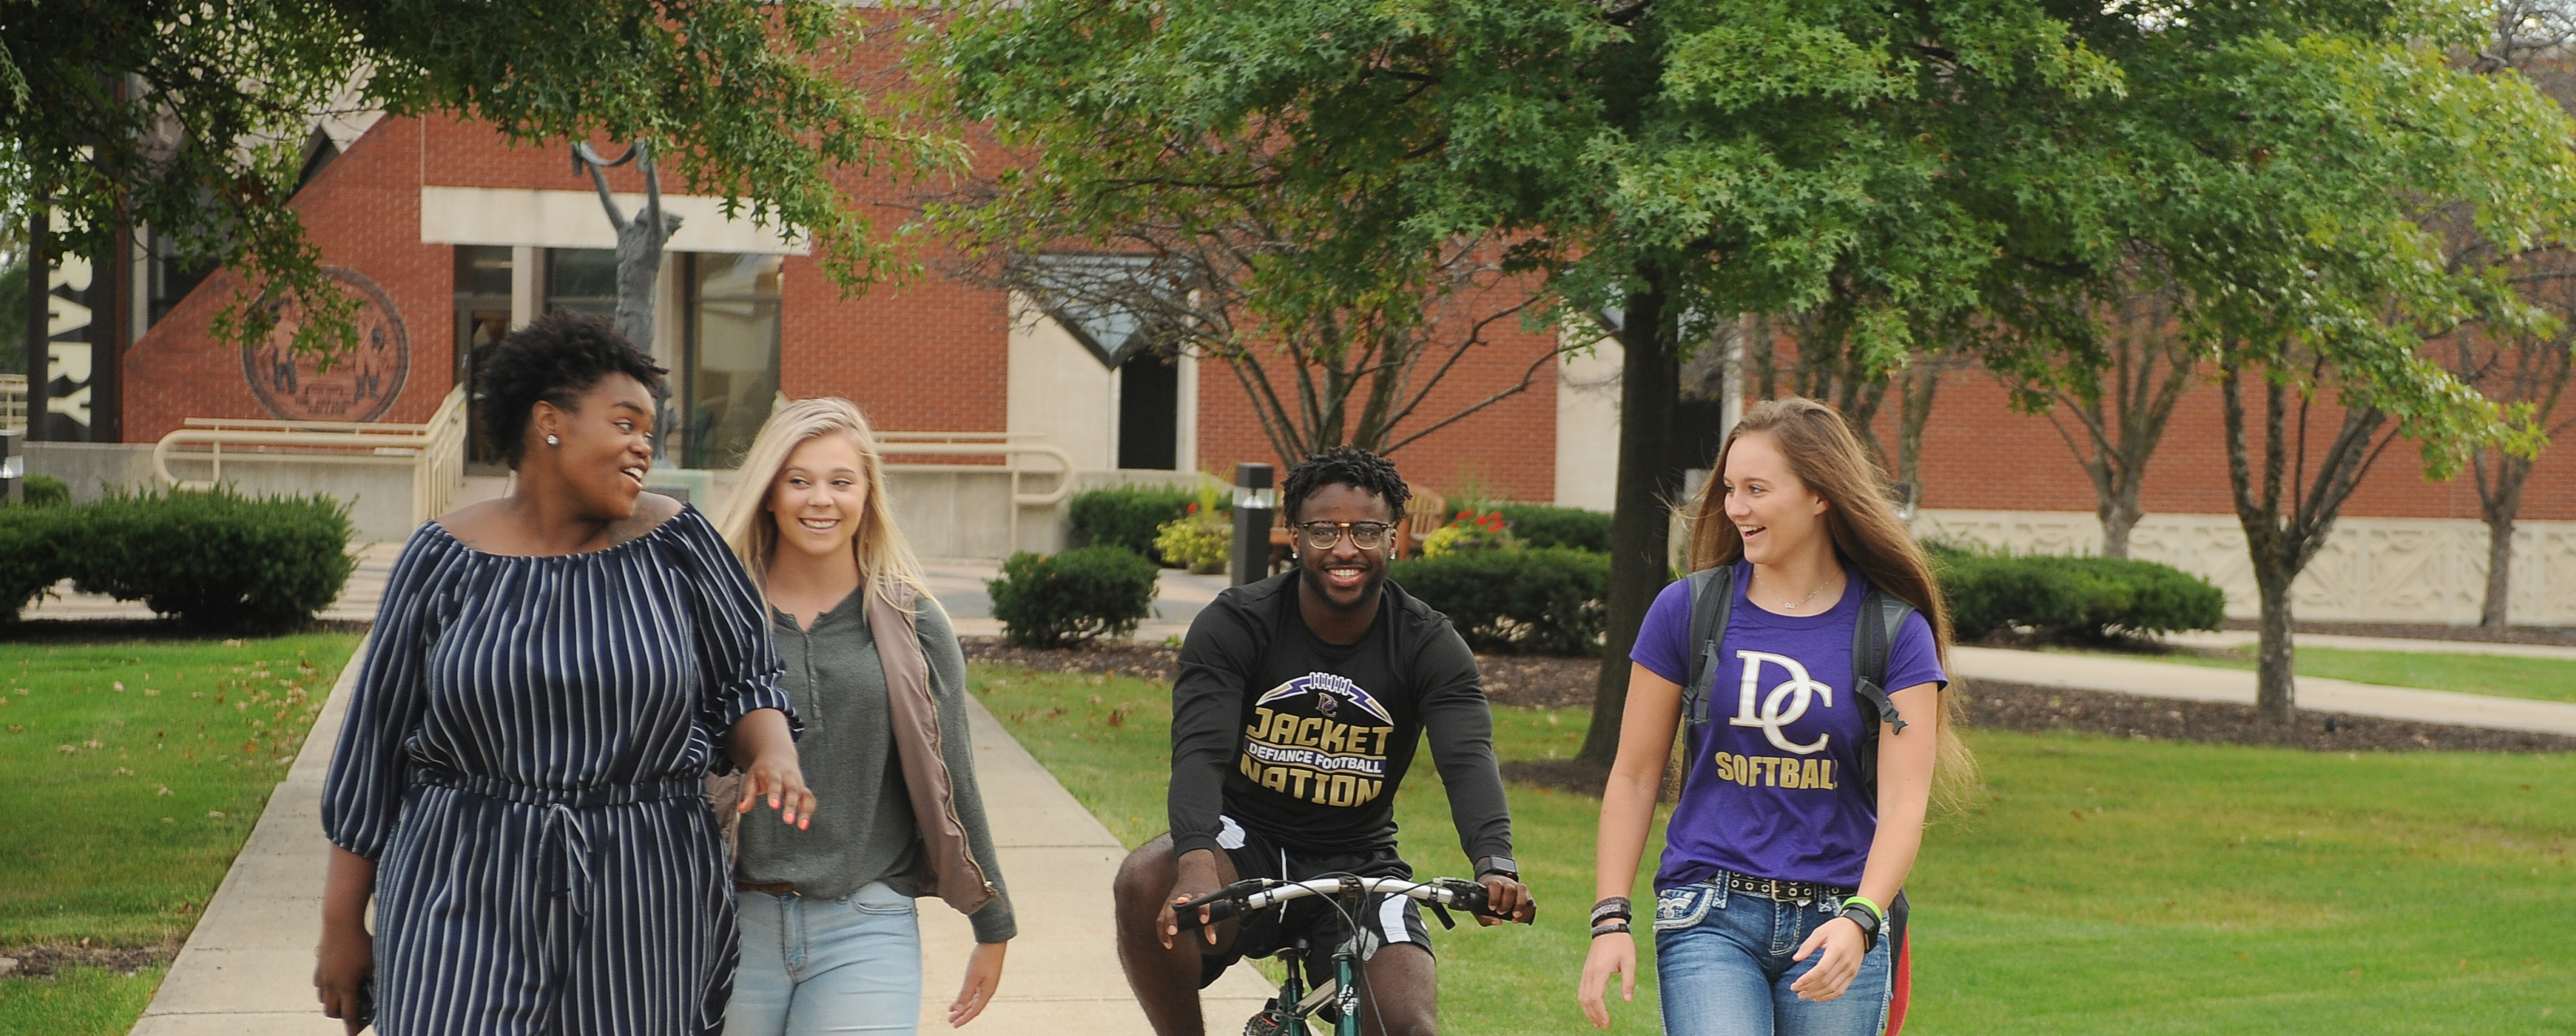 Three female students walking on a campus sidewalk with a male student on a bike. All are actively talking with each other and smiling.